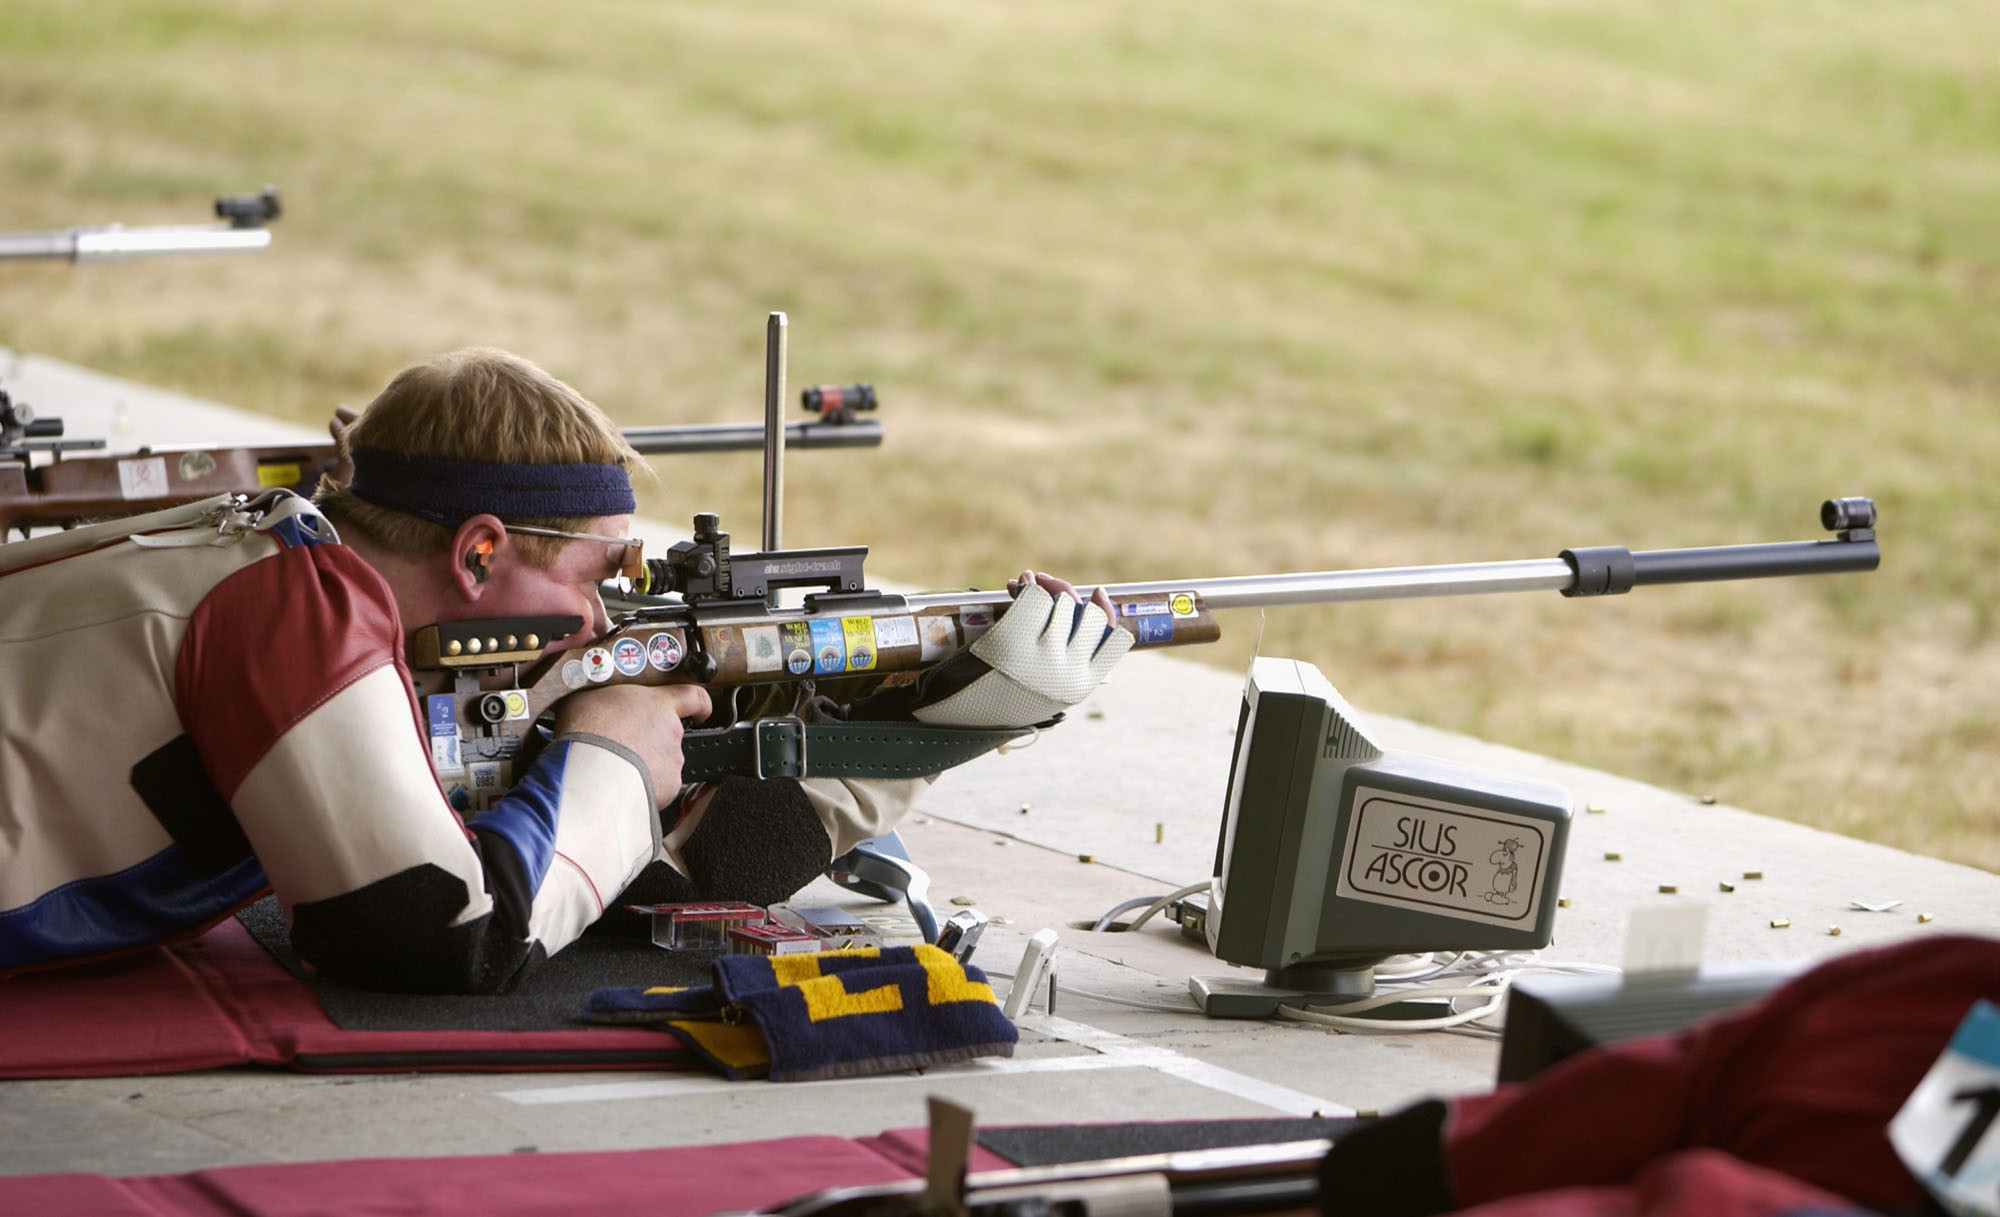 Bisley seems the most likely option if shooting is added to the programe for the 2022 Commonwealth Games ©Getty Images